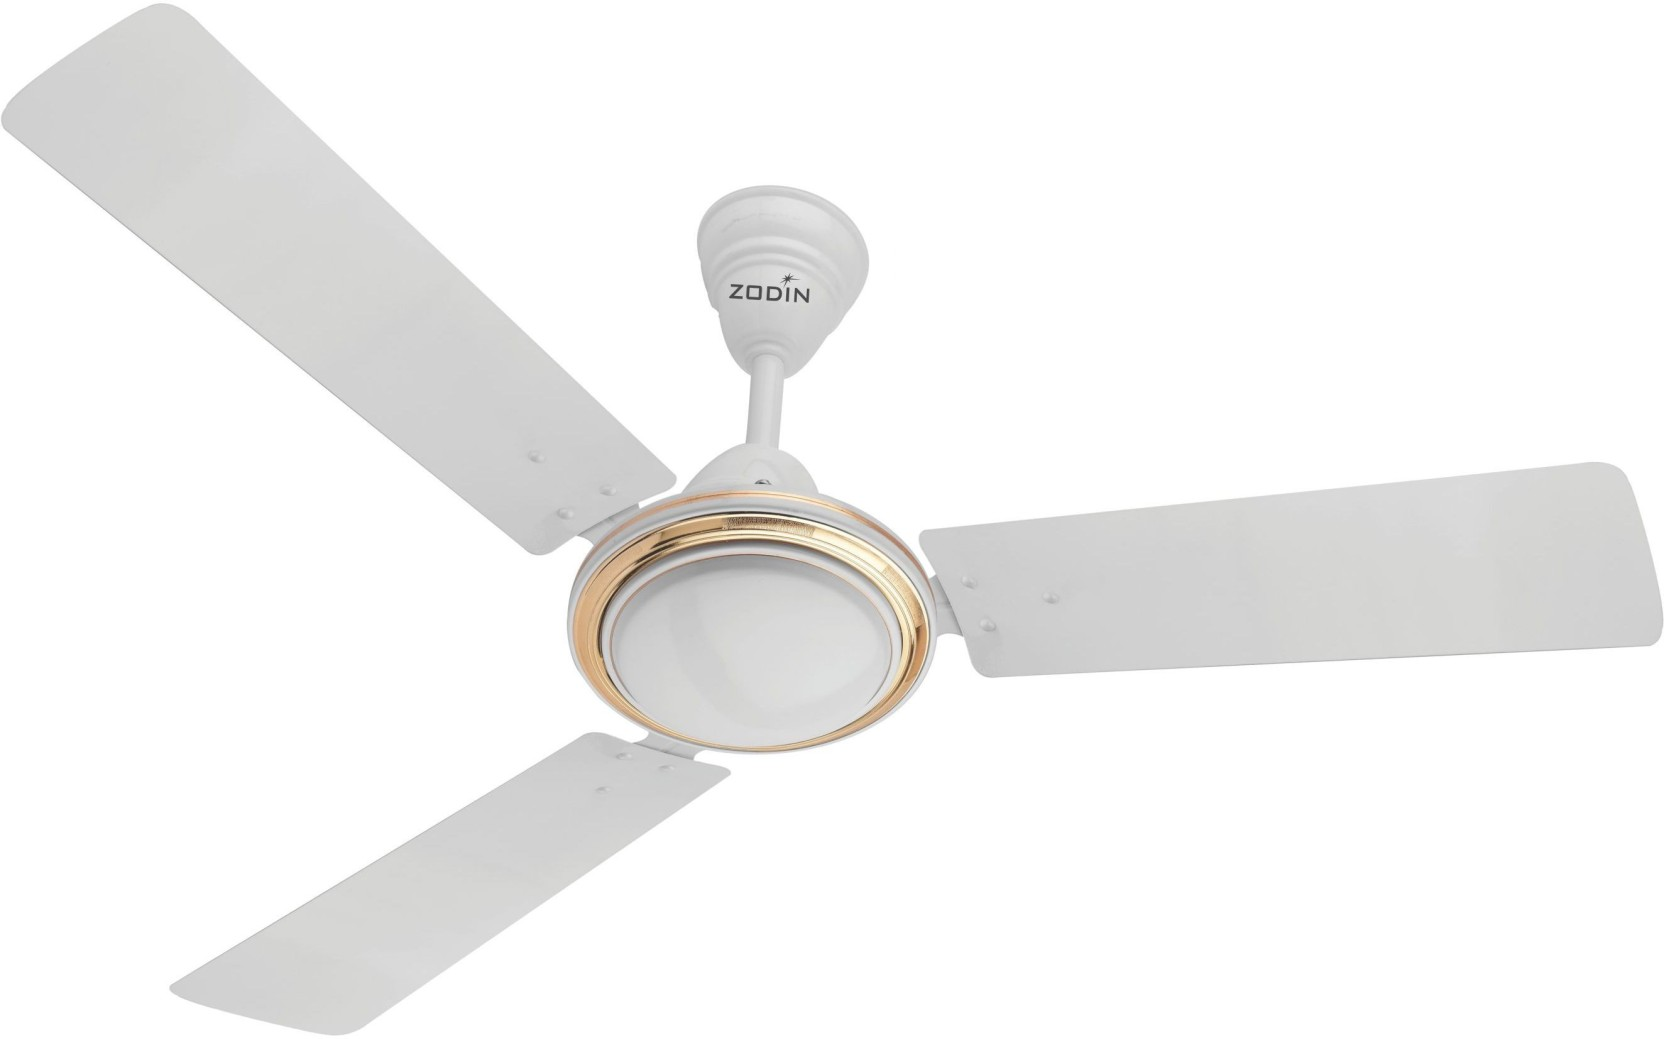 Zodin Rapid 1200mm High Speed 3 Blade Ceiling Fan Price In India Mixer Grinder Control By Tv Remote Home